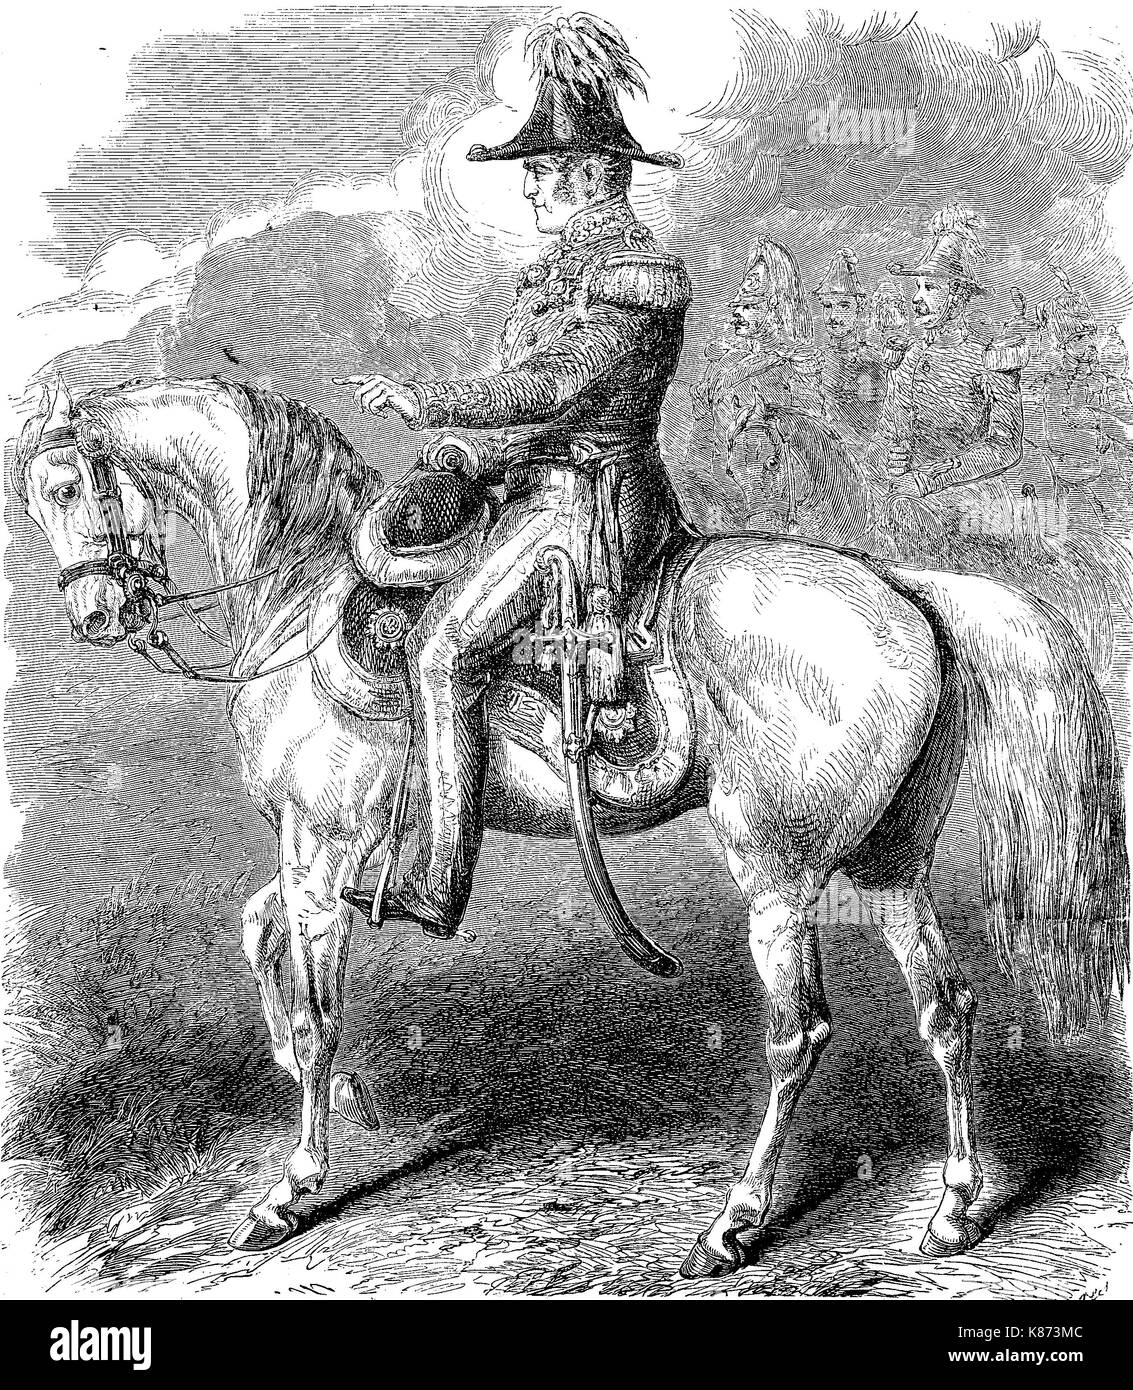 General Sir James Simpson GCB, 1792 - 1868, was a British Army officer of the 19th century. He commanded the British troops in the Crimea from June to November 1855, Crimean War, Digital improved reproduction of an original woodprint from the 19th century - Stock Image